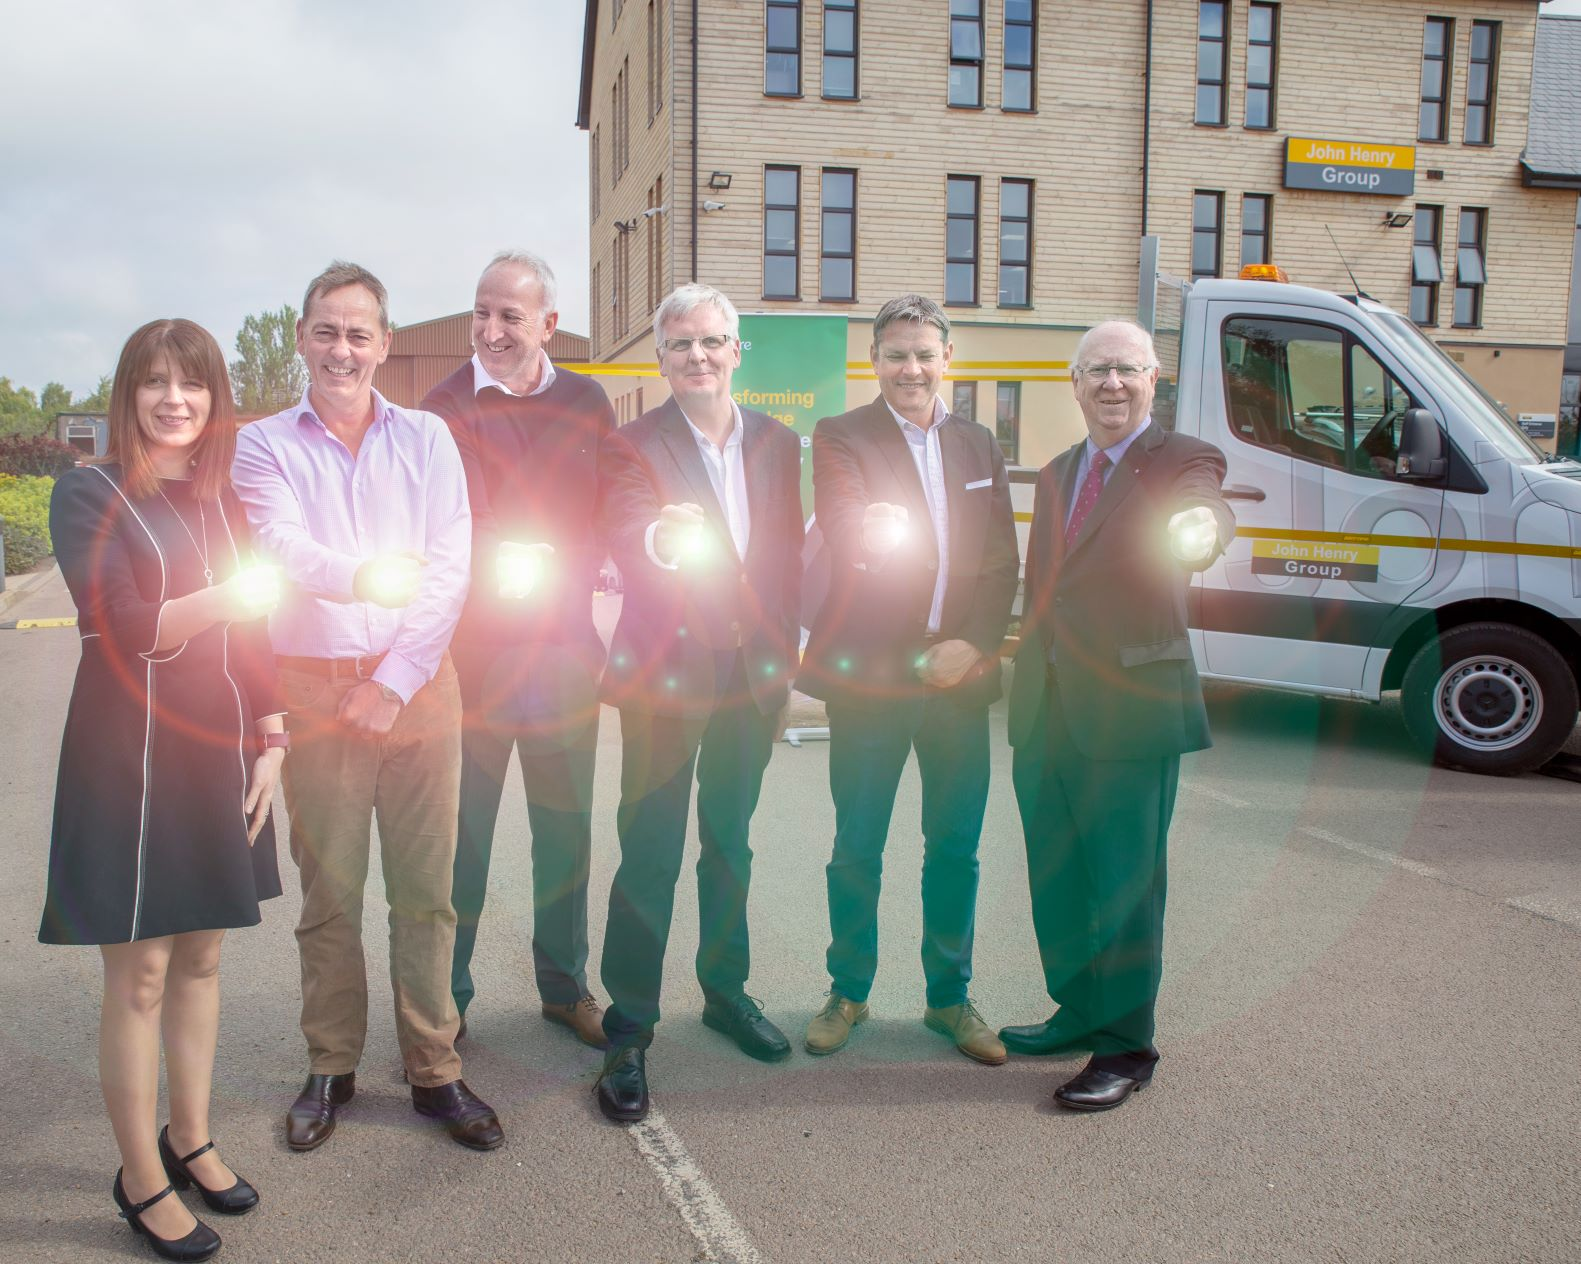 Work starts on Cambridge's Gigabit City transformation